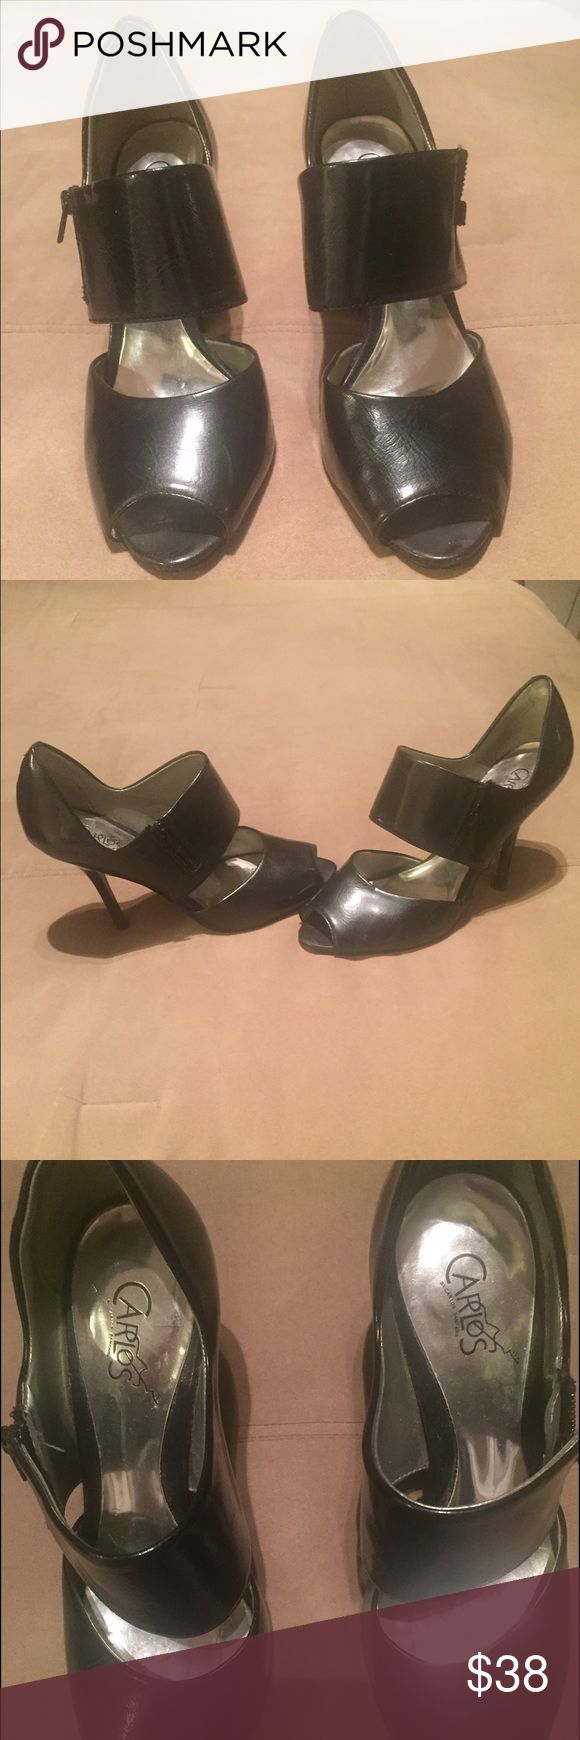 Black vintage Carlos Santana heels Size 6.5 vintage black Carlos Santana pencil heels. 3 inches. Great for the office or a night on the town. Original box not included. Carlos Santana Shoes Heels